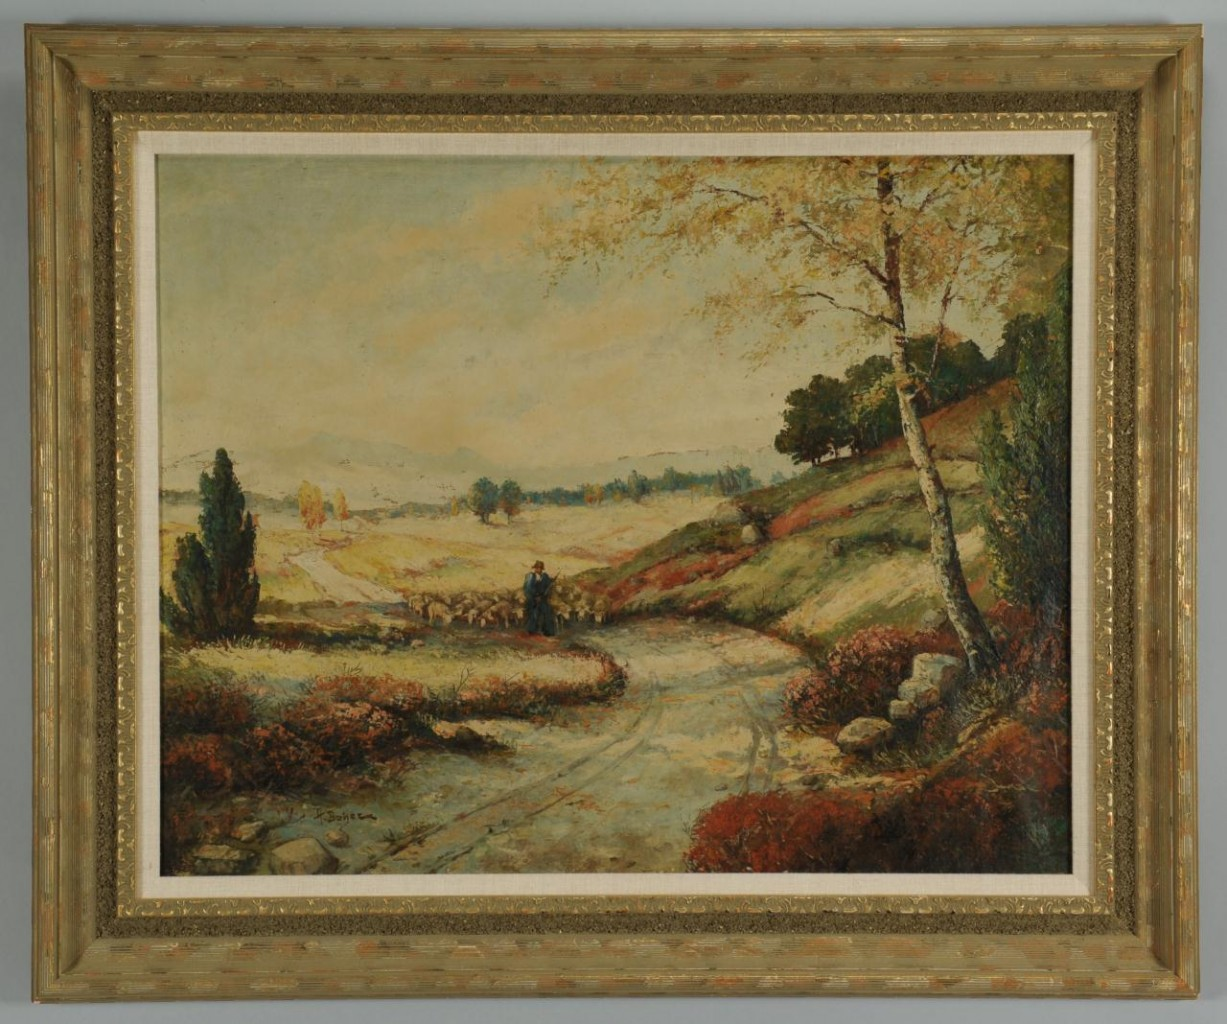 Lot 665: Impressionist landscape with shepherd, o/c